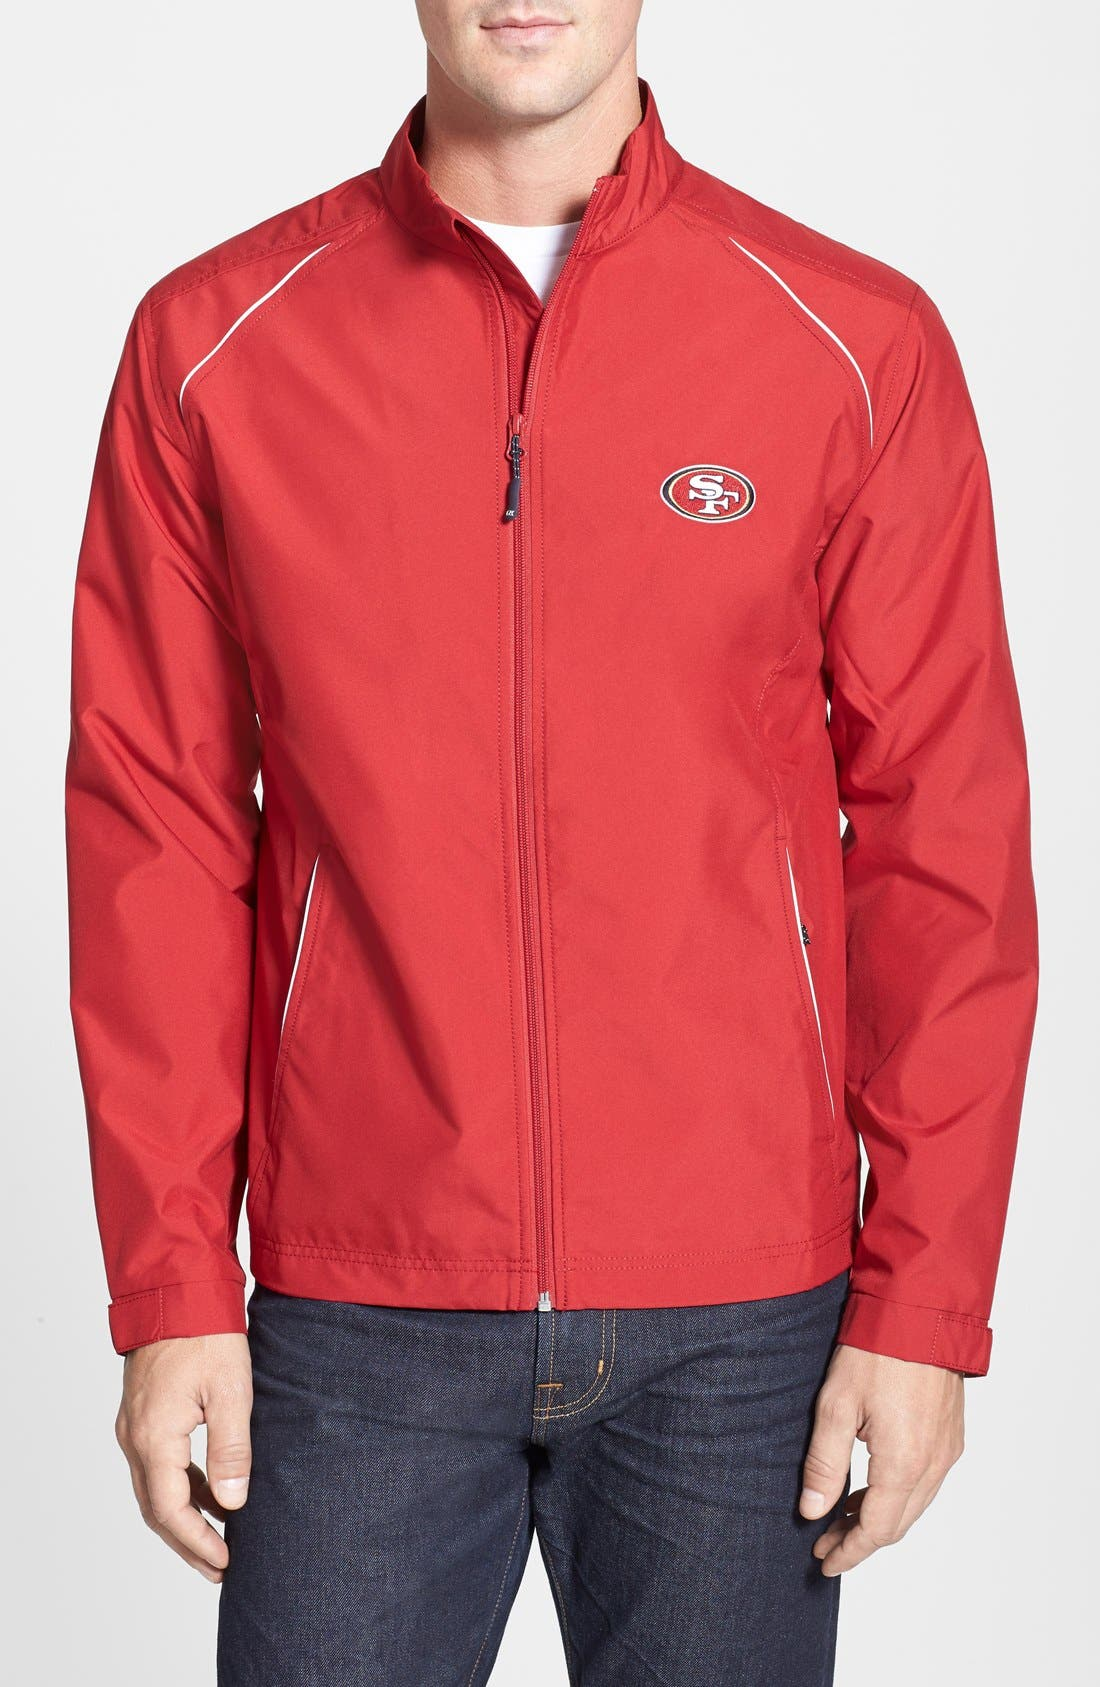 Main Image - Cutter & Buck San Francisco 49ers - Beacon WeatherTec Wind & Water Resistant Jacket